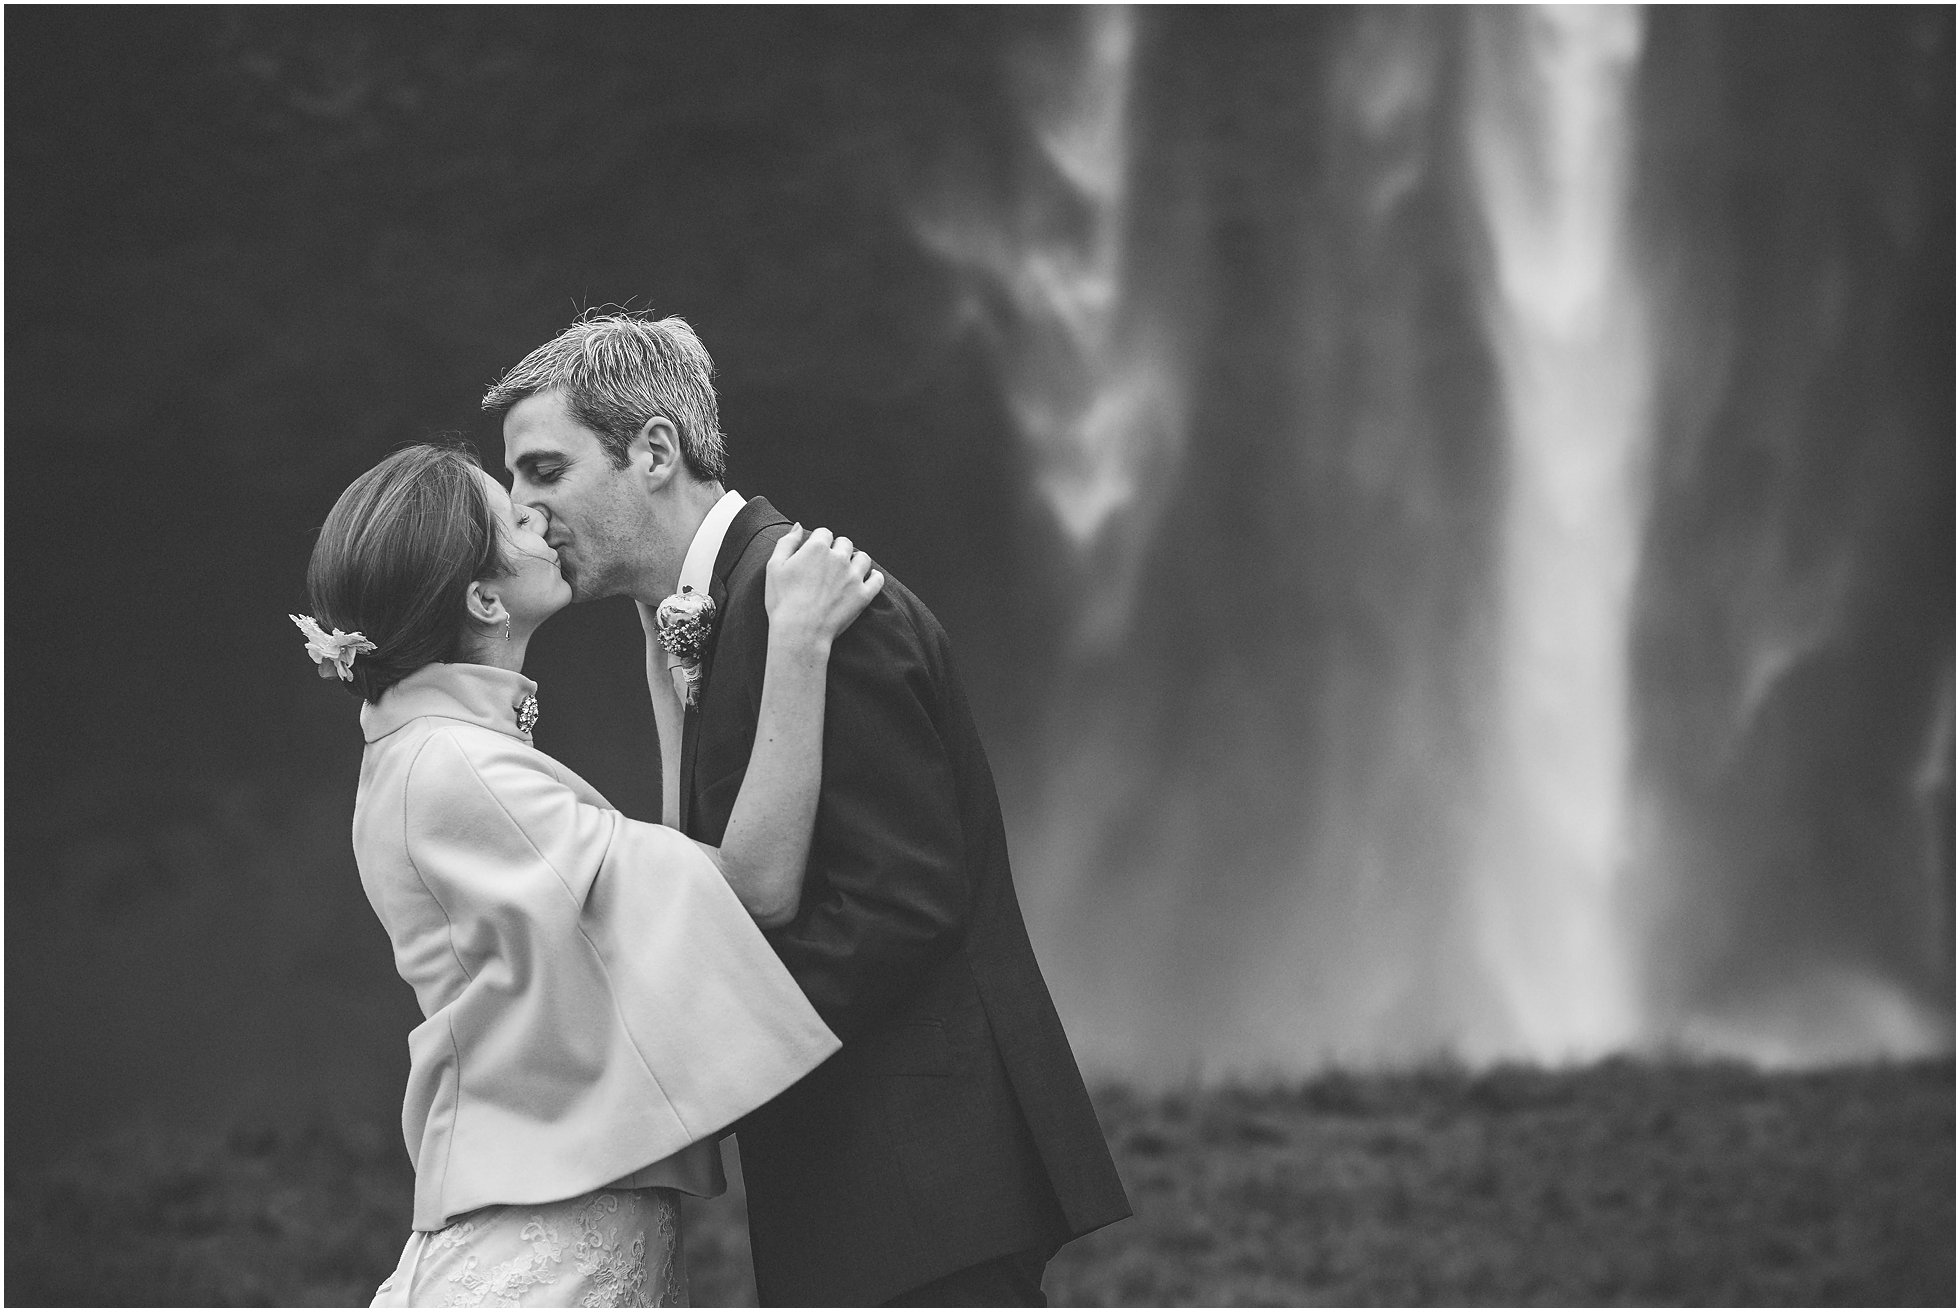 First kiss in front of Seljalandsfoss